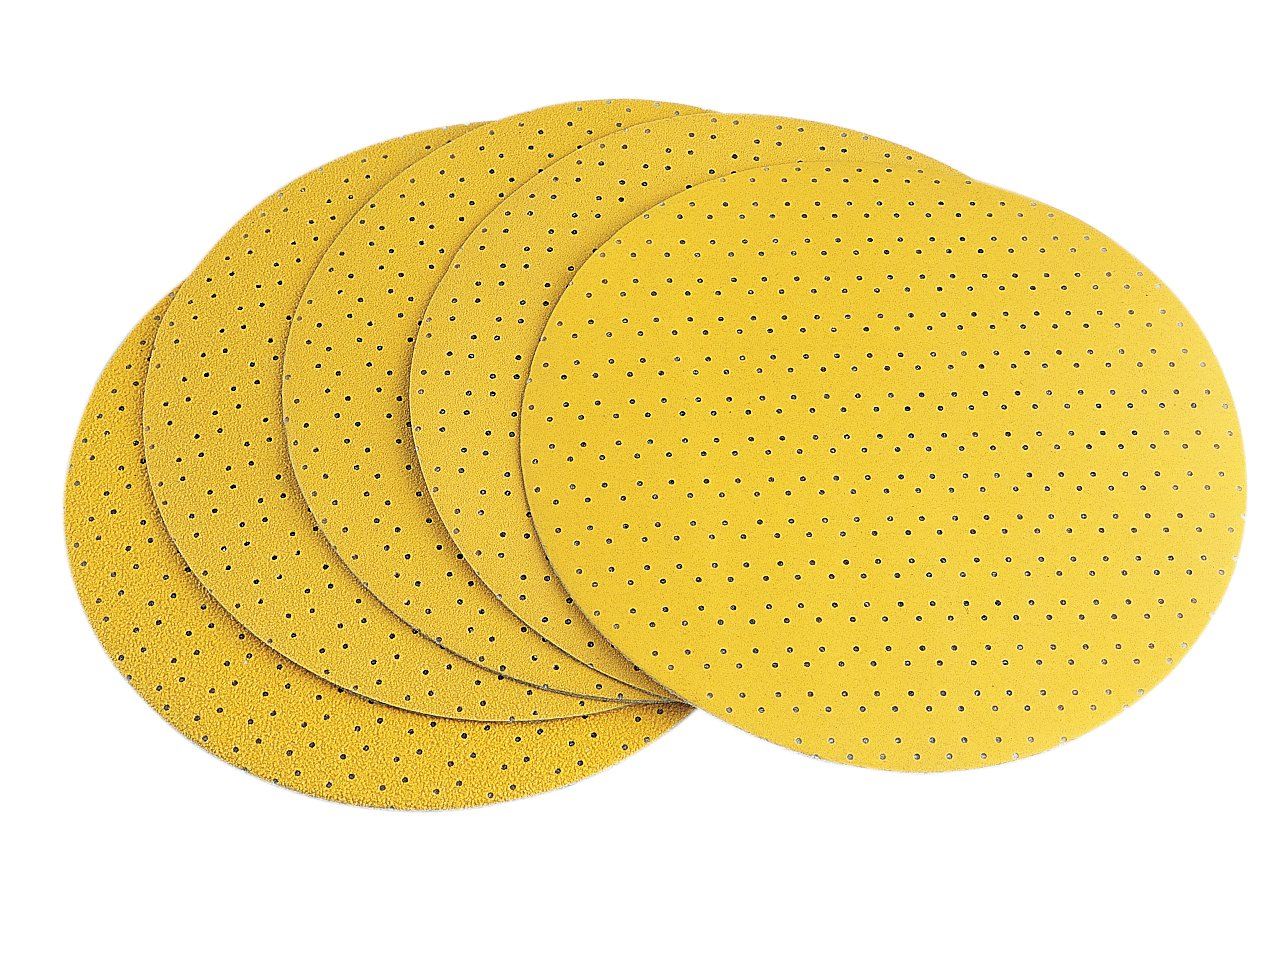 Pack of 25 Flex Velcro Sanding Paper Perforated to Suit WS-702 100 Grit